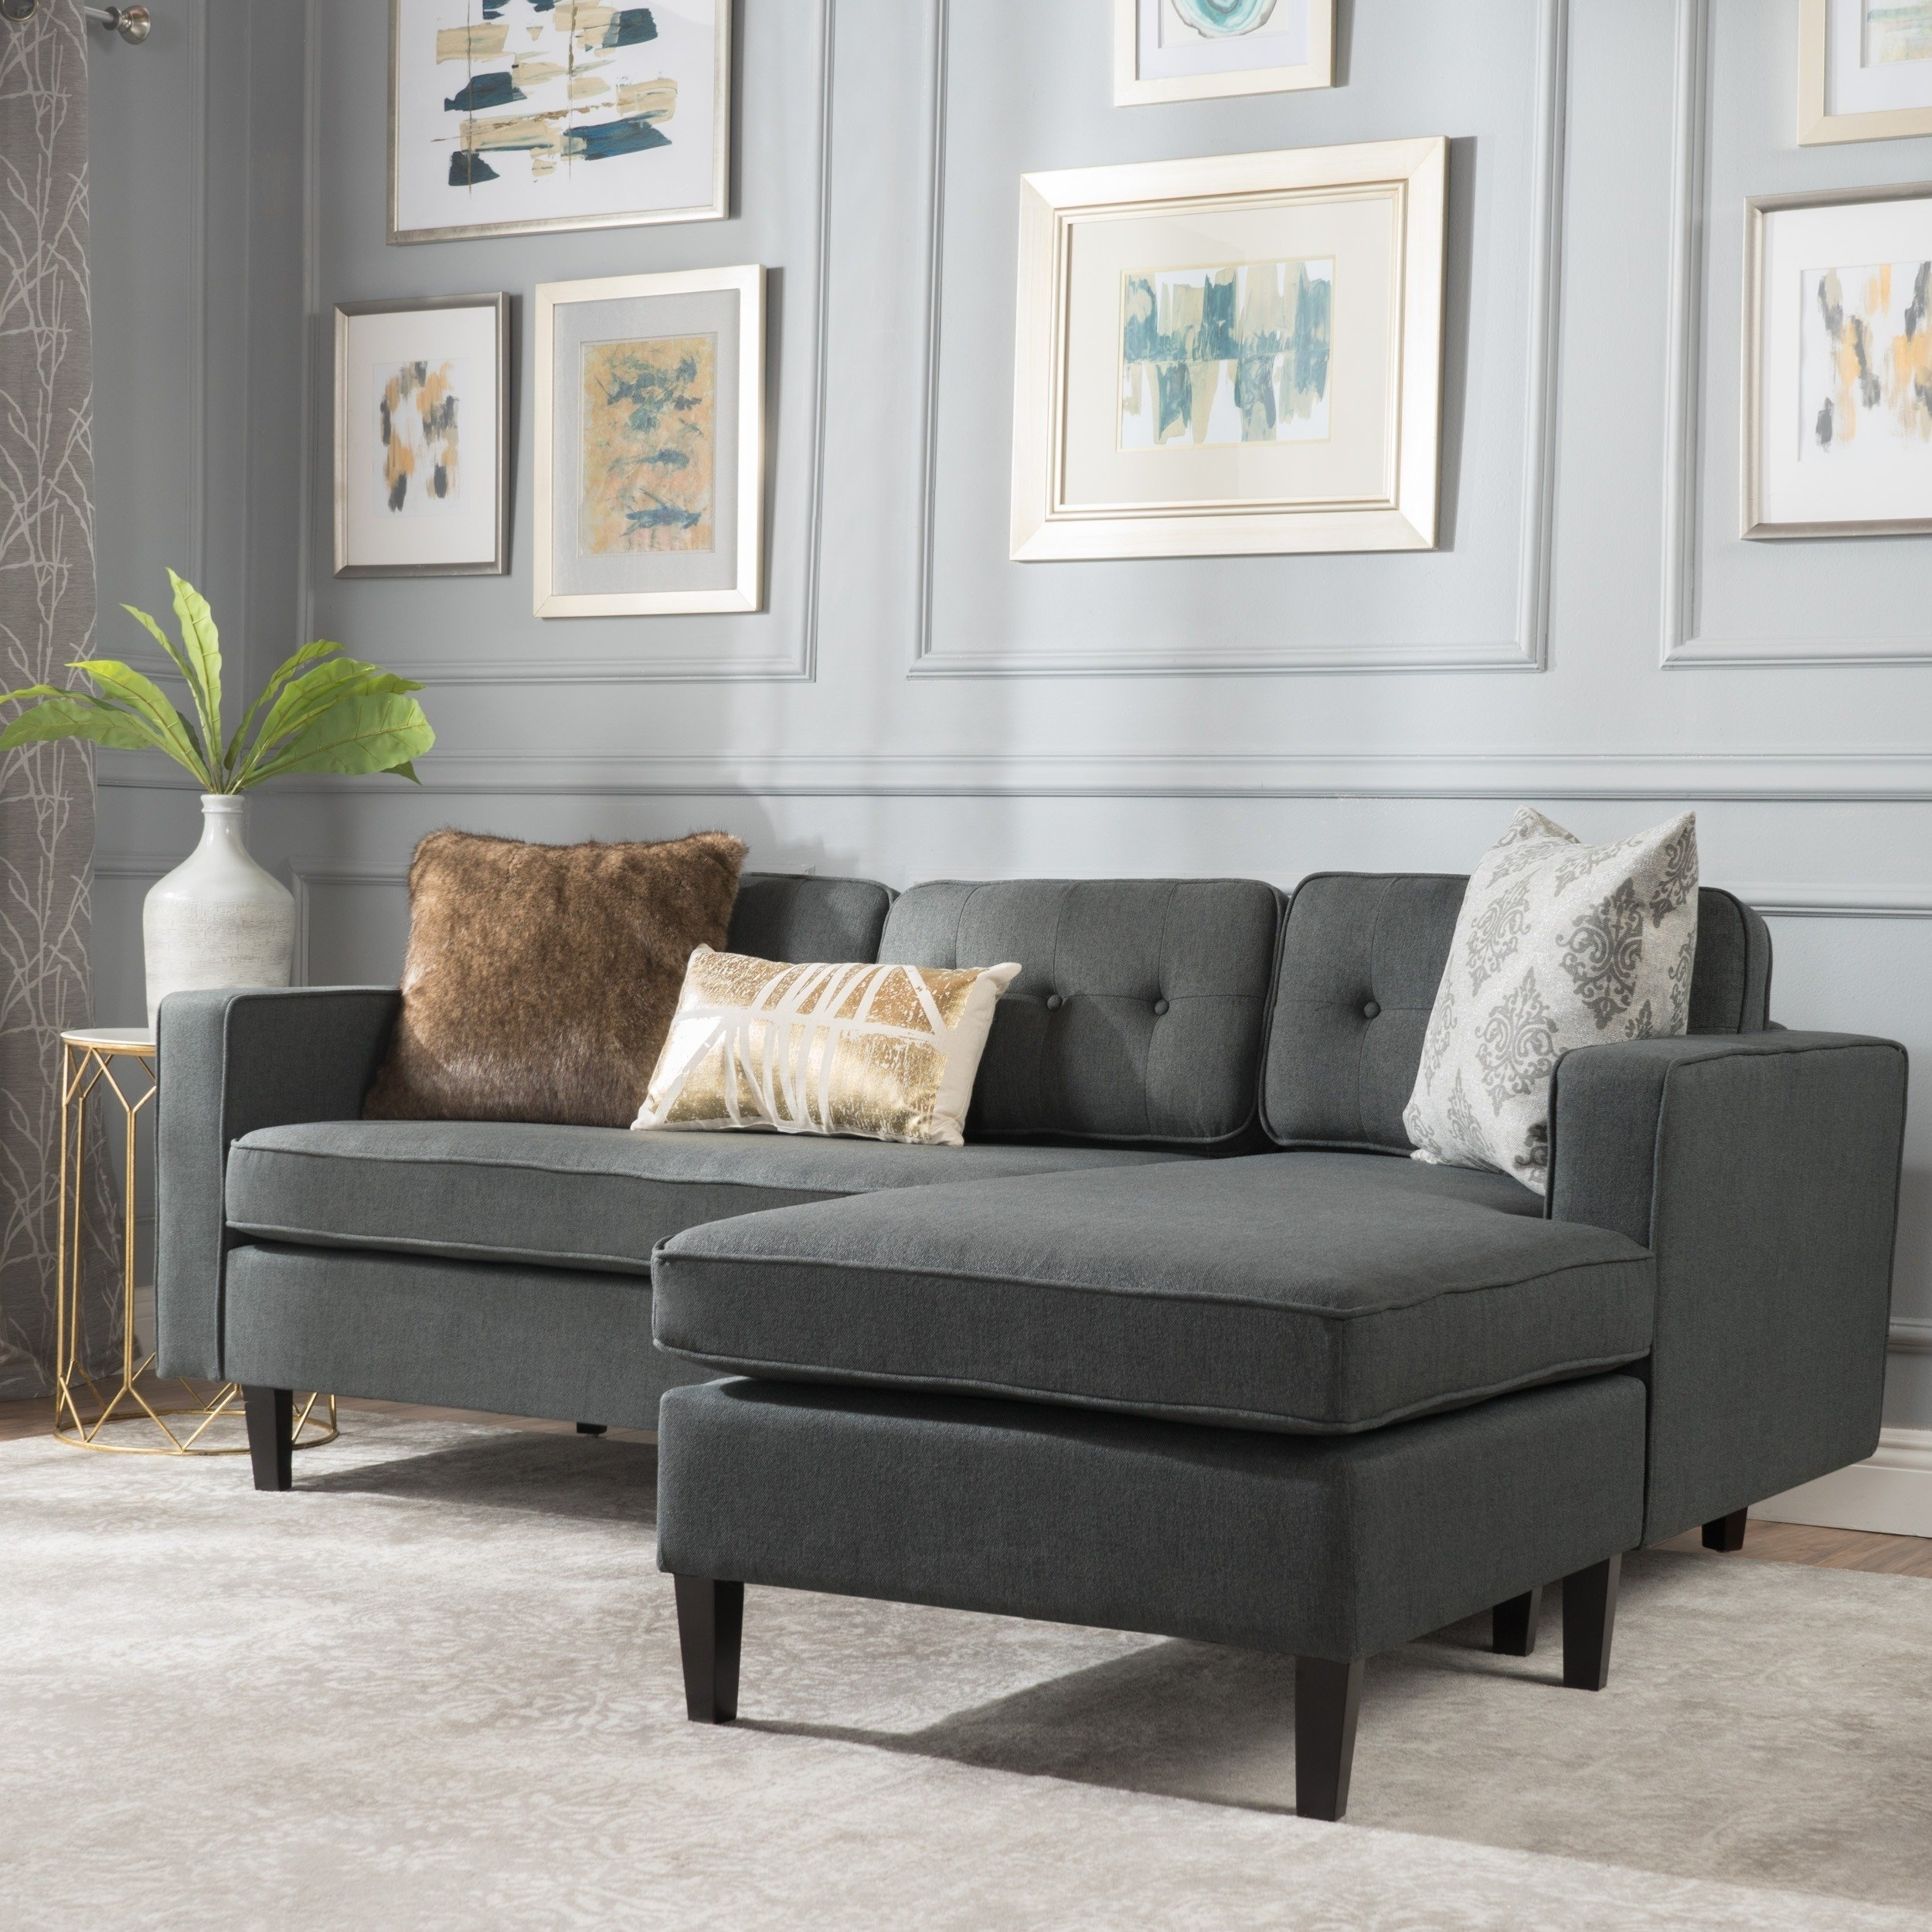 2 Piece Chaise Sectional Sofa | Baci Living Room Inside Tenny Dark Grey 2 Piece Left Facing Chaise Sectionals With 2 Headrest (View 18 of 25)